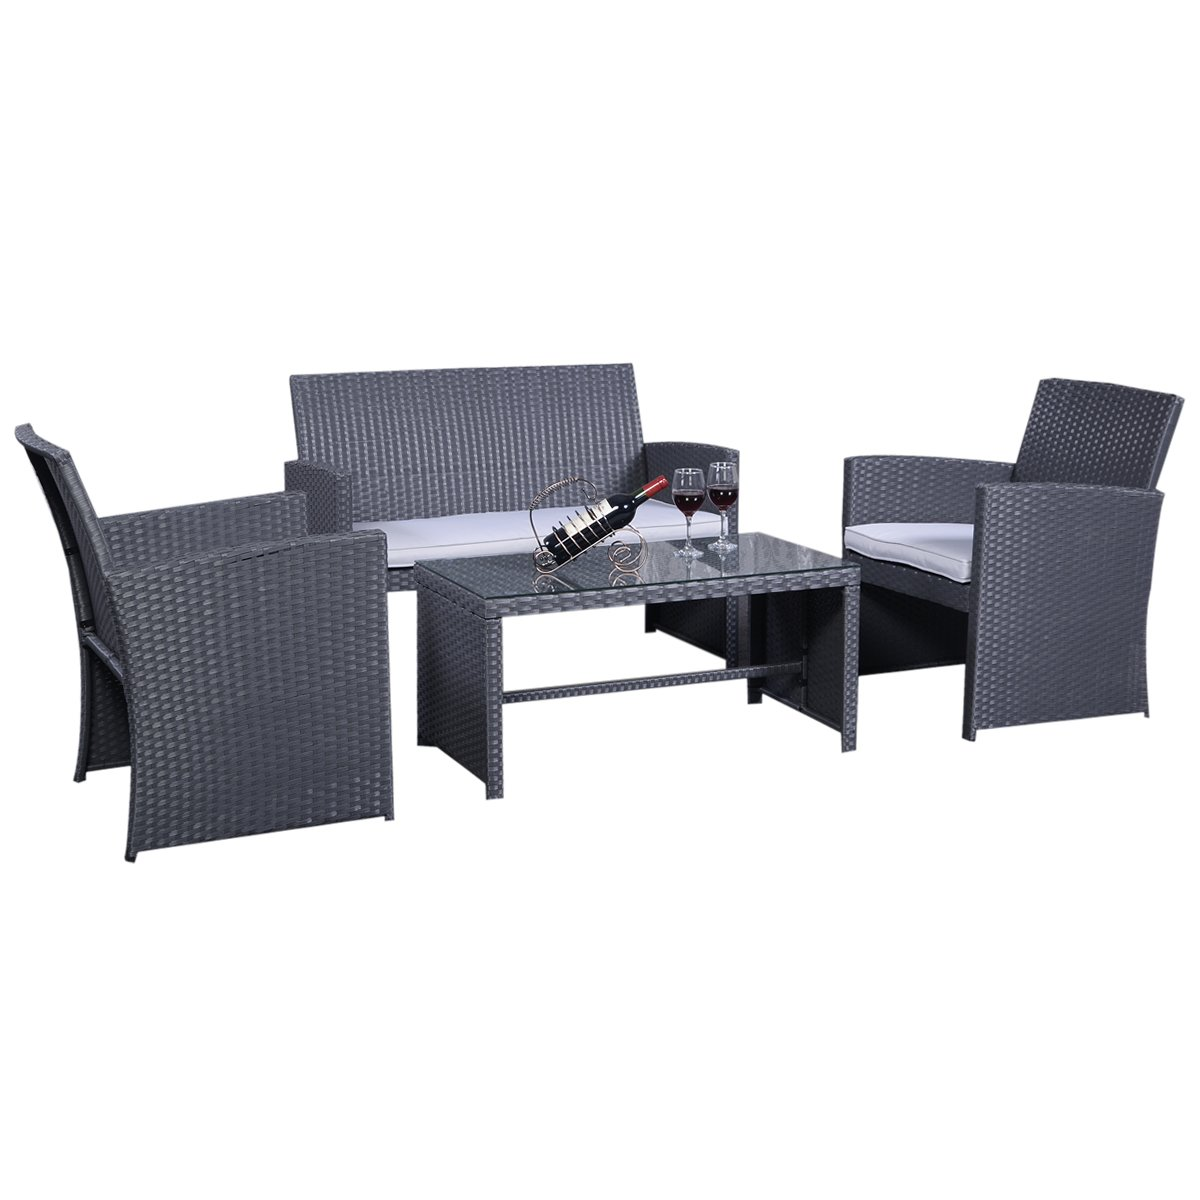 rattanm bel set gartenm bel rattan lounge polyrattan. Black Bedroom Furniture Sets. Home Design Ideas